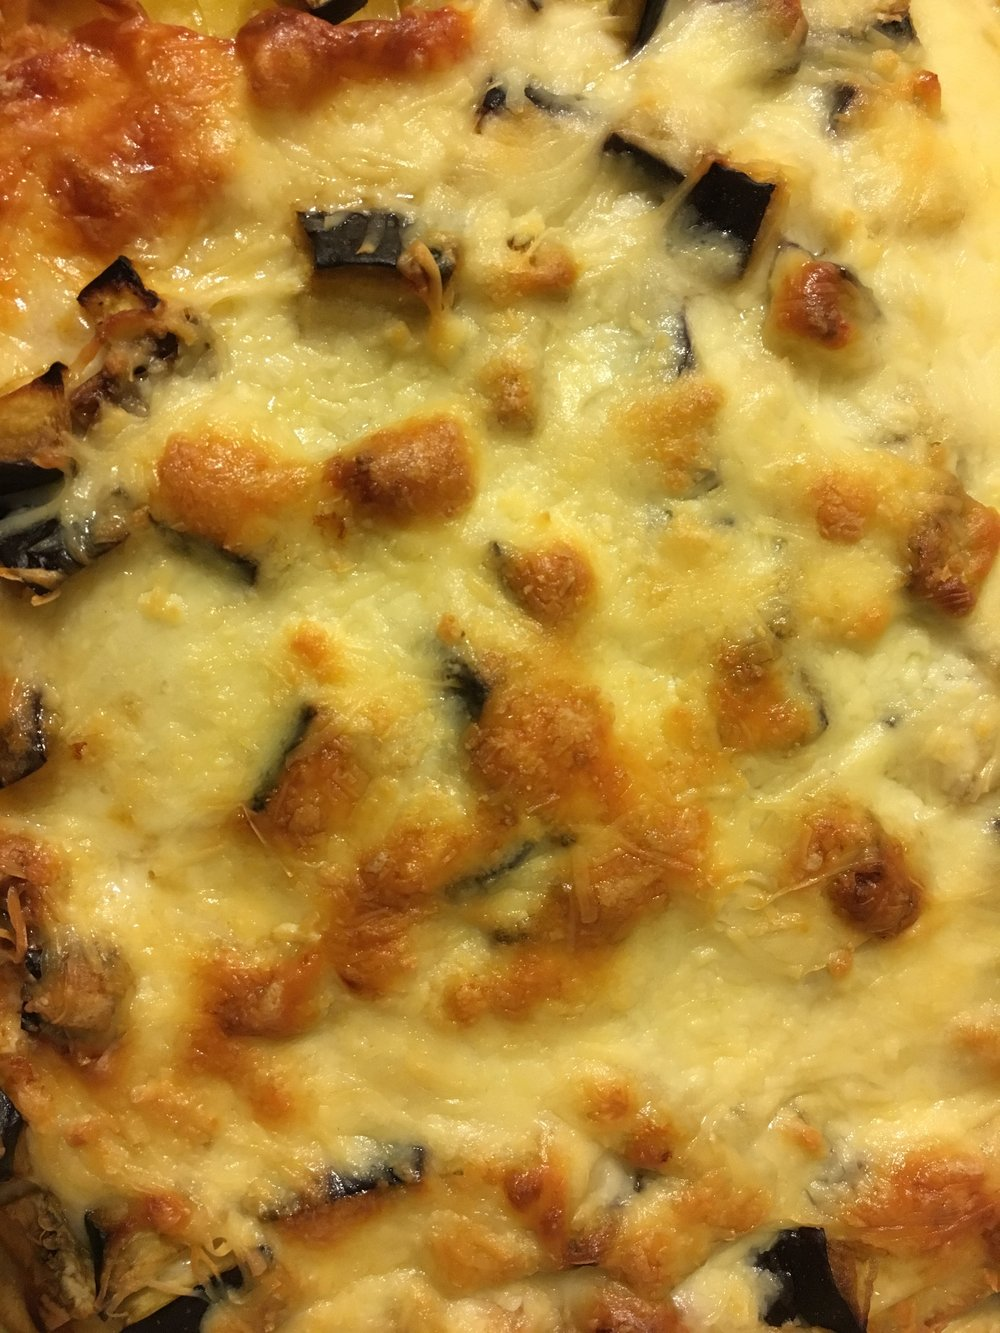 Golden, crunchy, cheesy crust. What more do you need for a weeknight meal on a cold and grey november day?